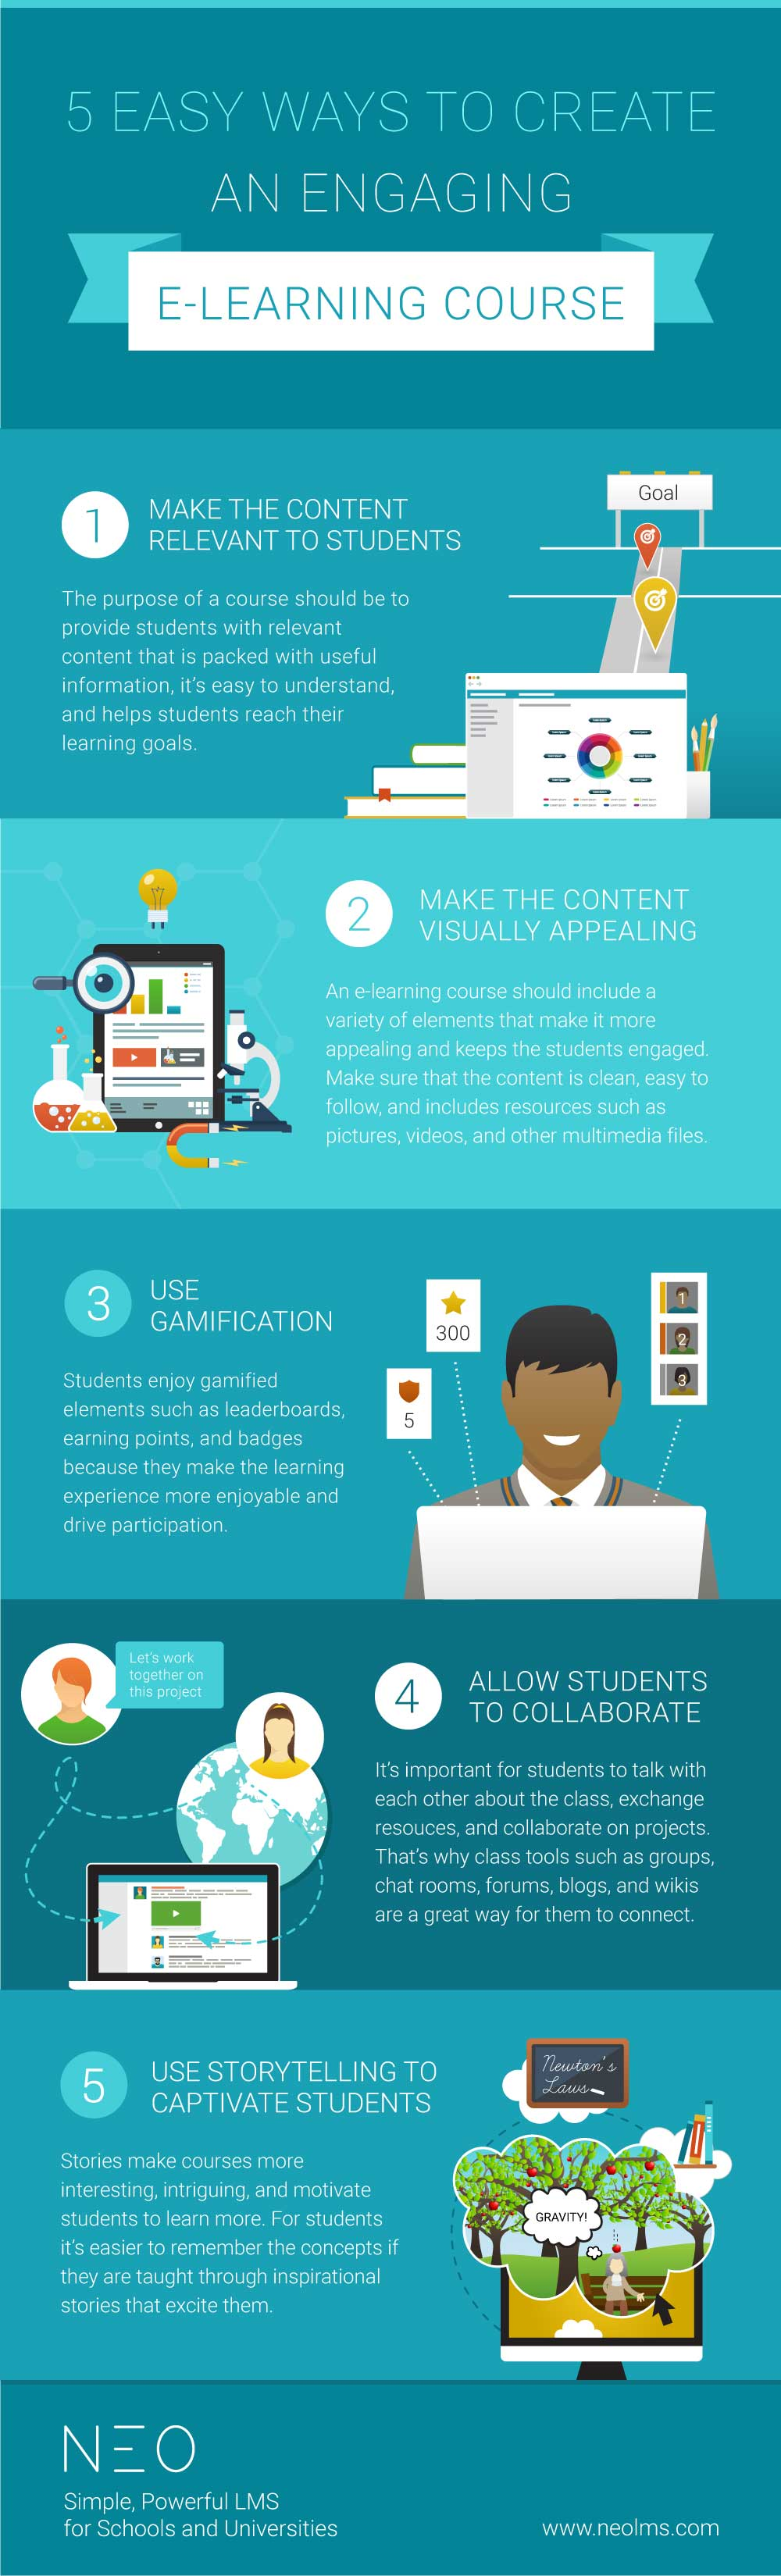 engaging elearning course